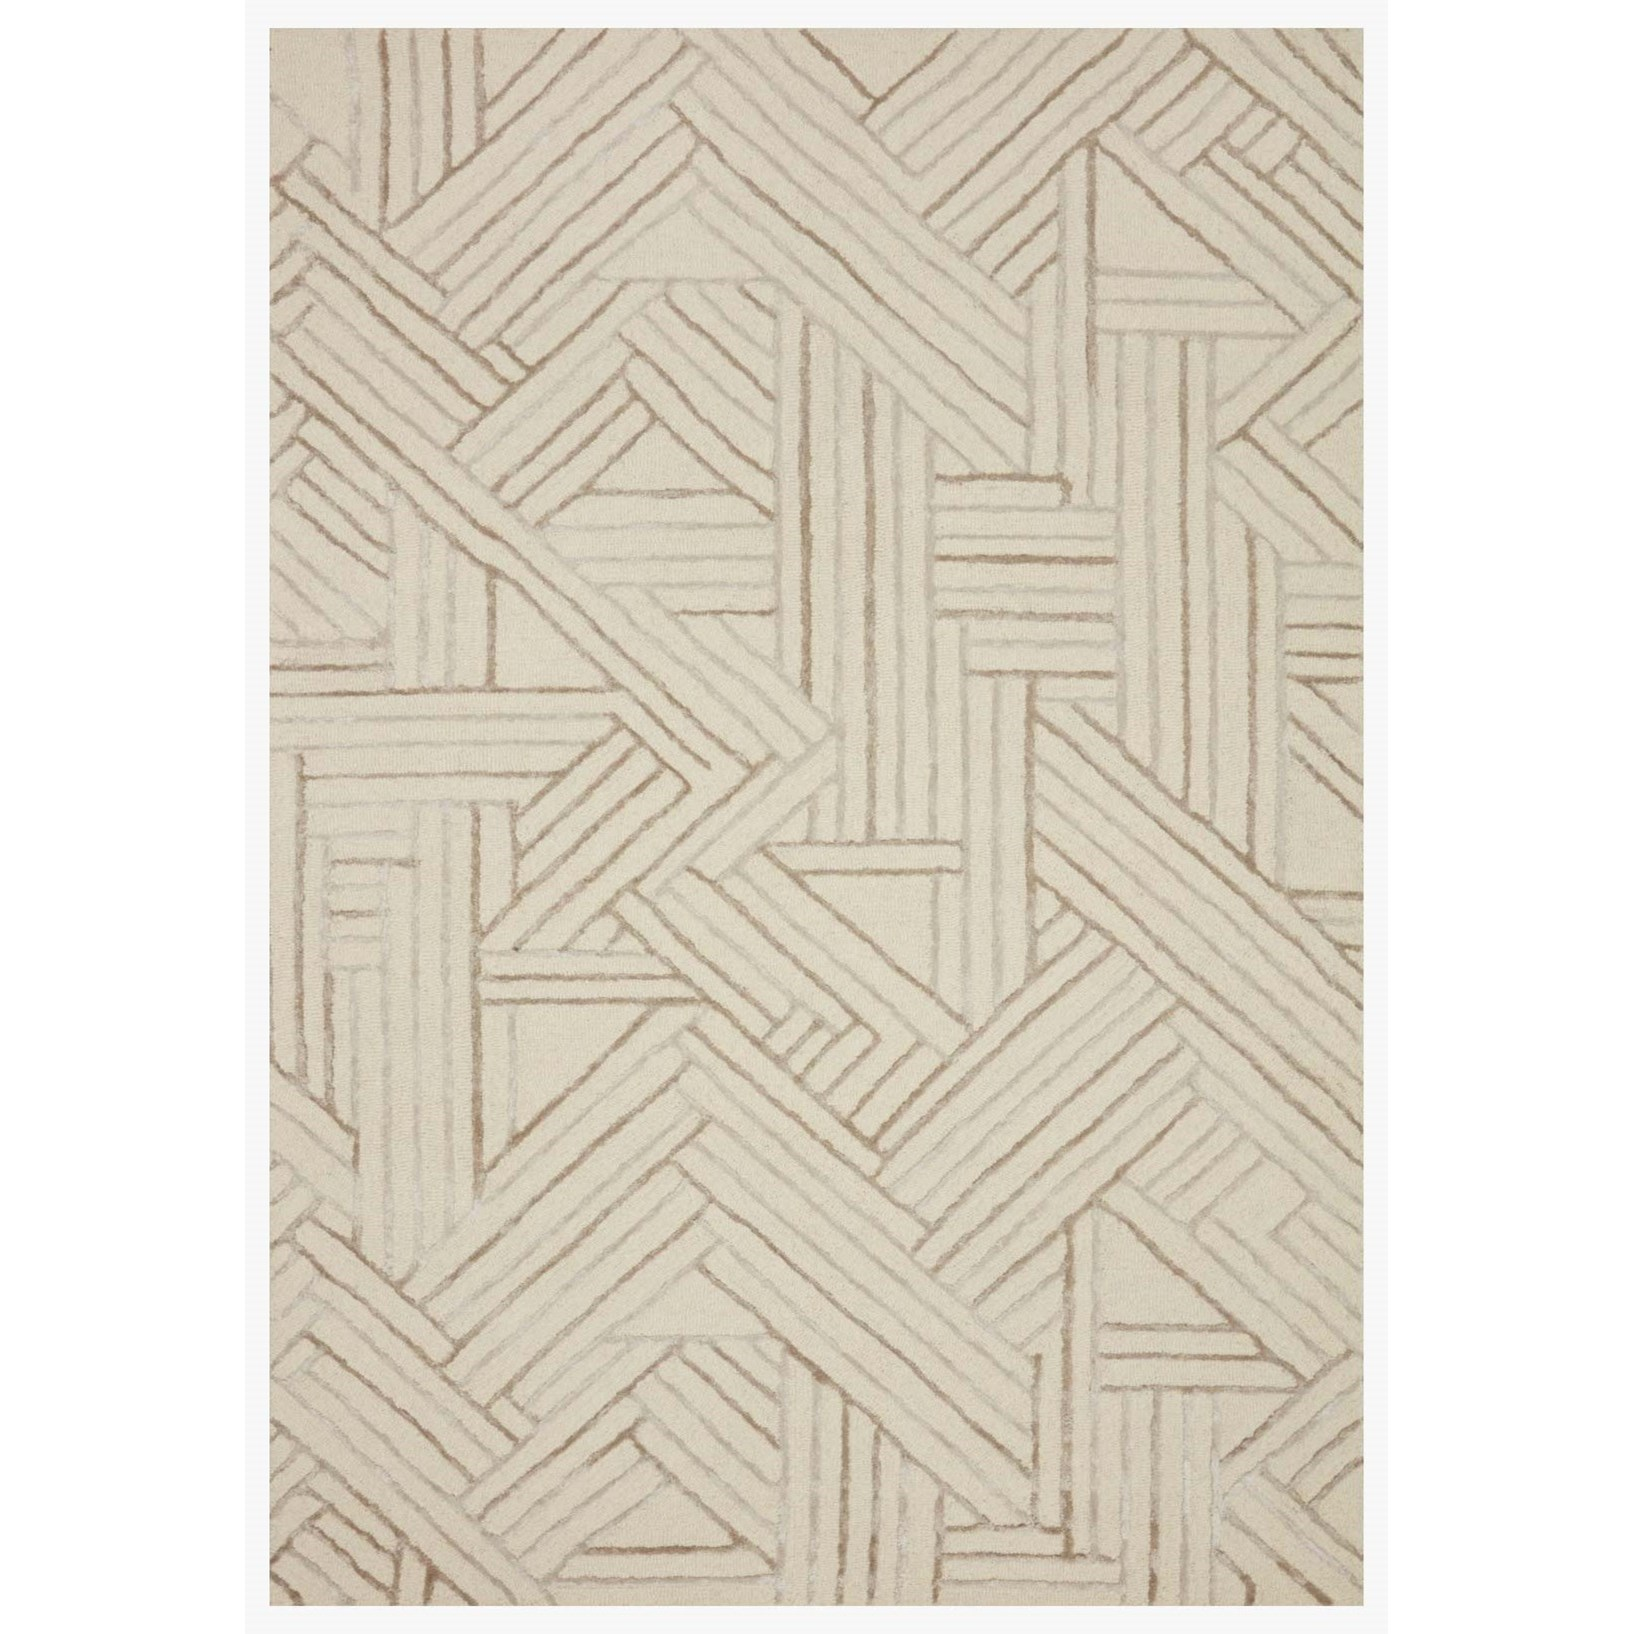 """Verve 2'3"""" x 3'9"""" Ivory / Oatmeal Rug by Loloi Rugs at Sprintz Furniture"""